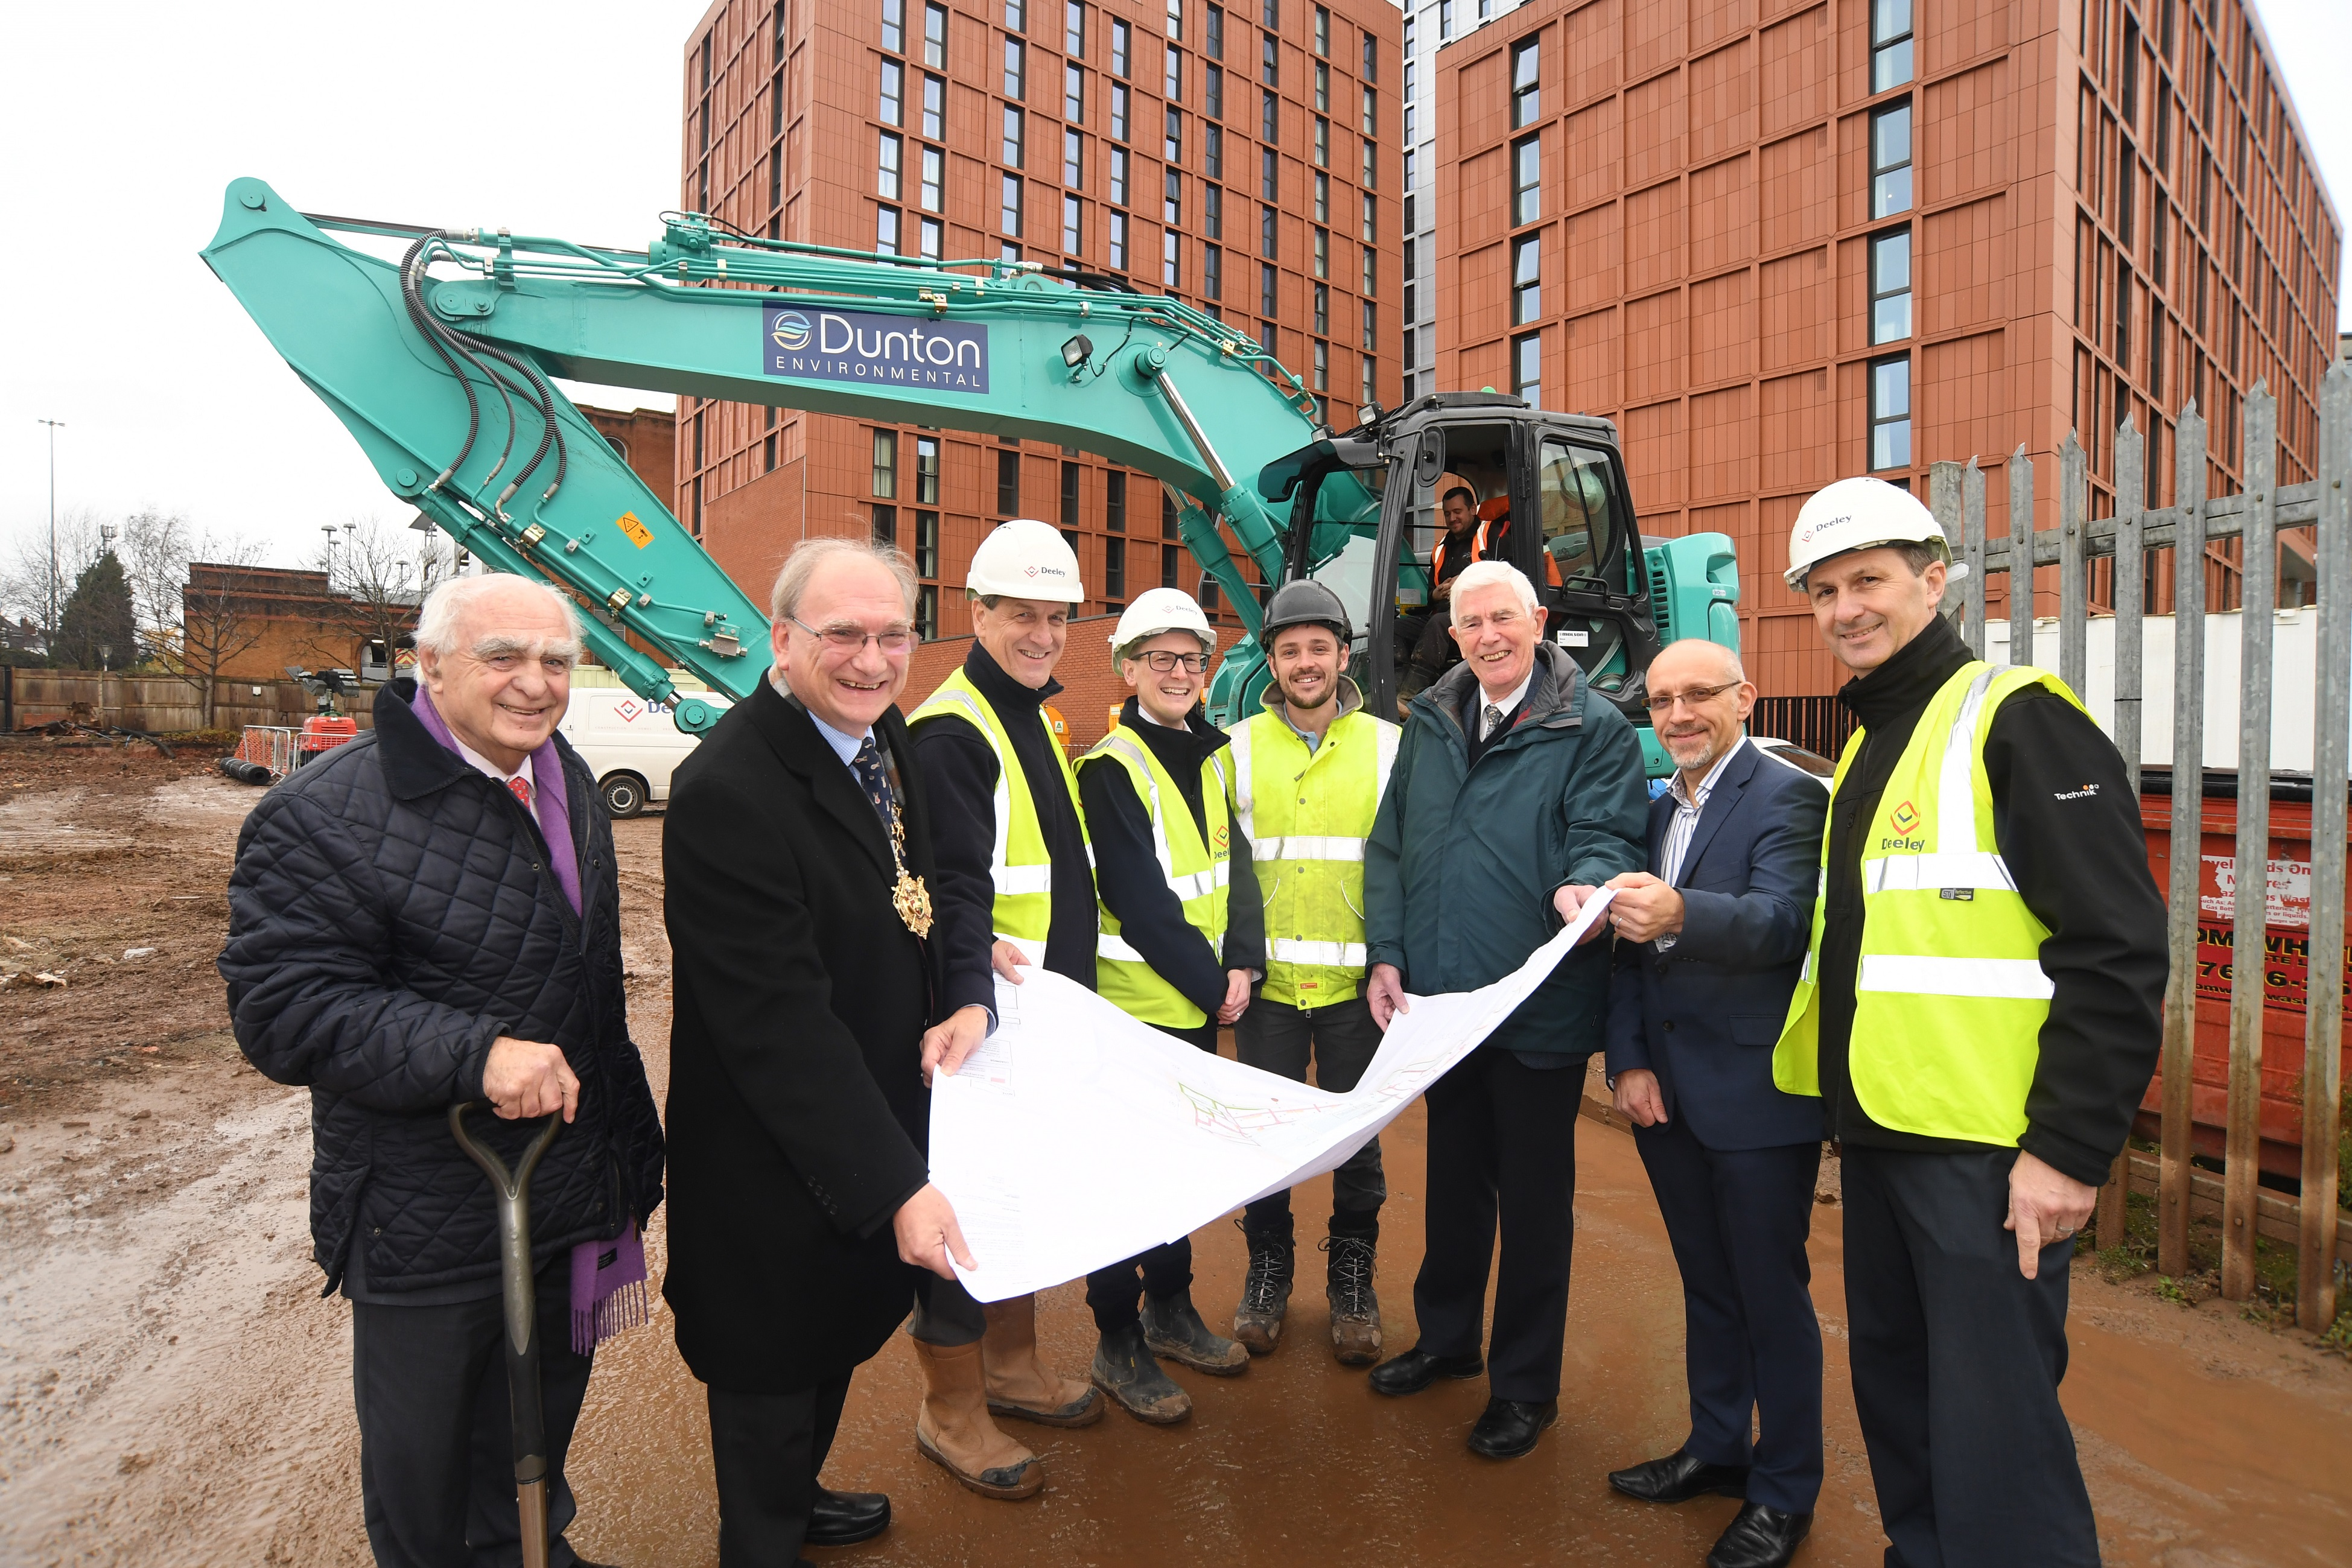 Work starts on new £6.8 million residential development in Coventry City Centre